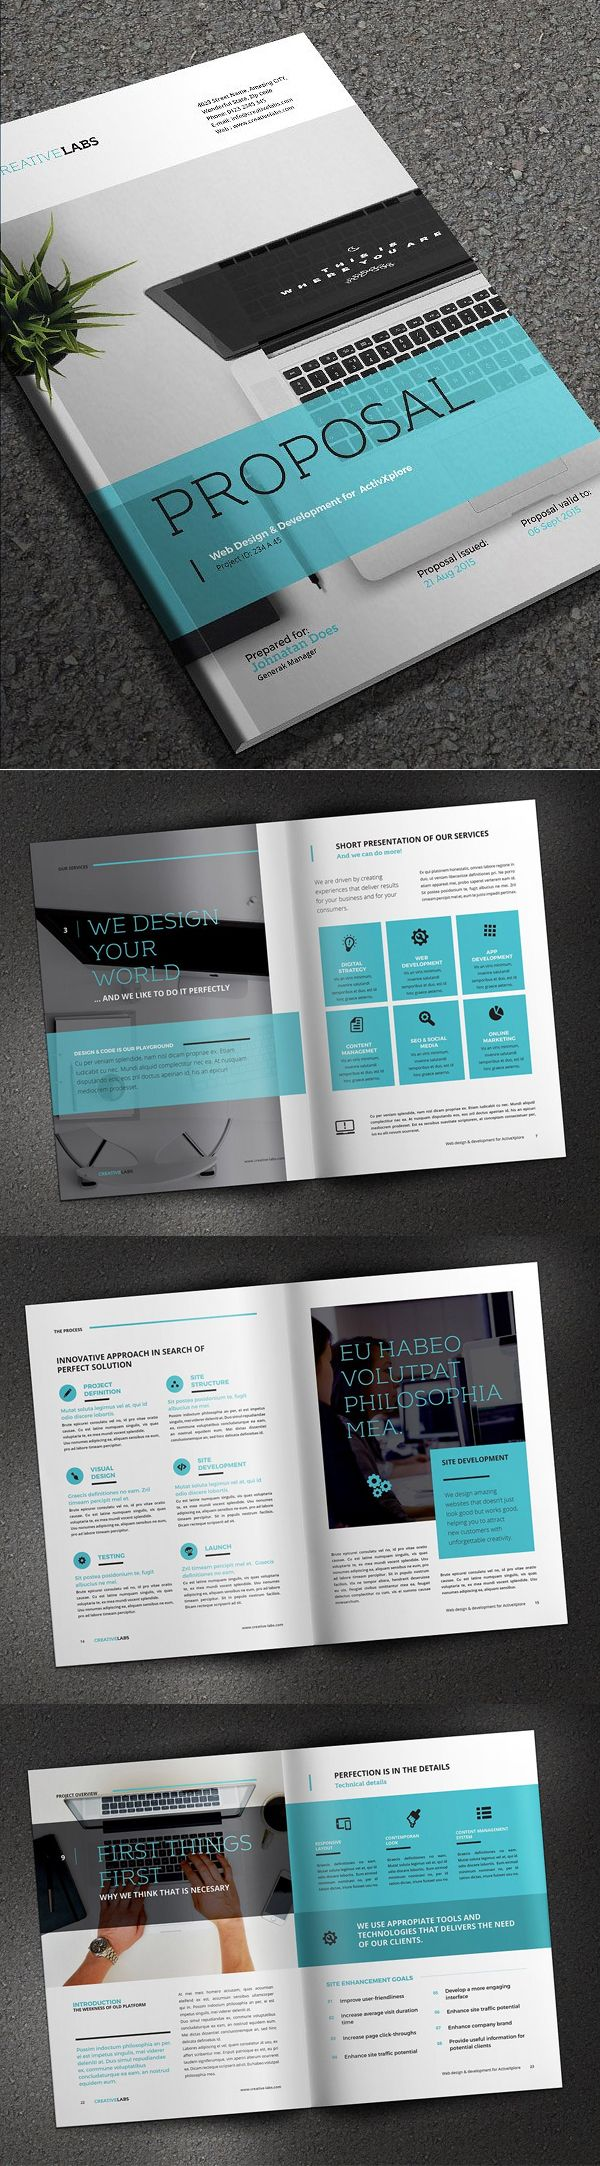 Professional Business Proposal Templates Design 24